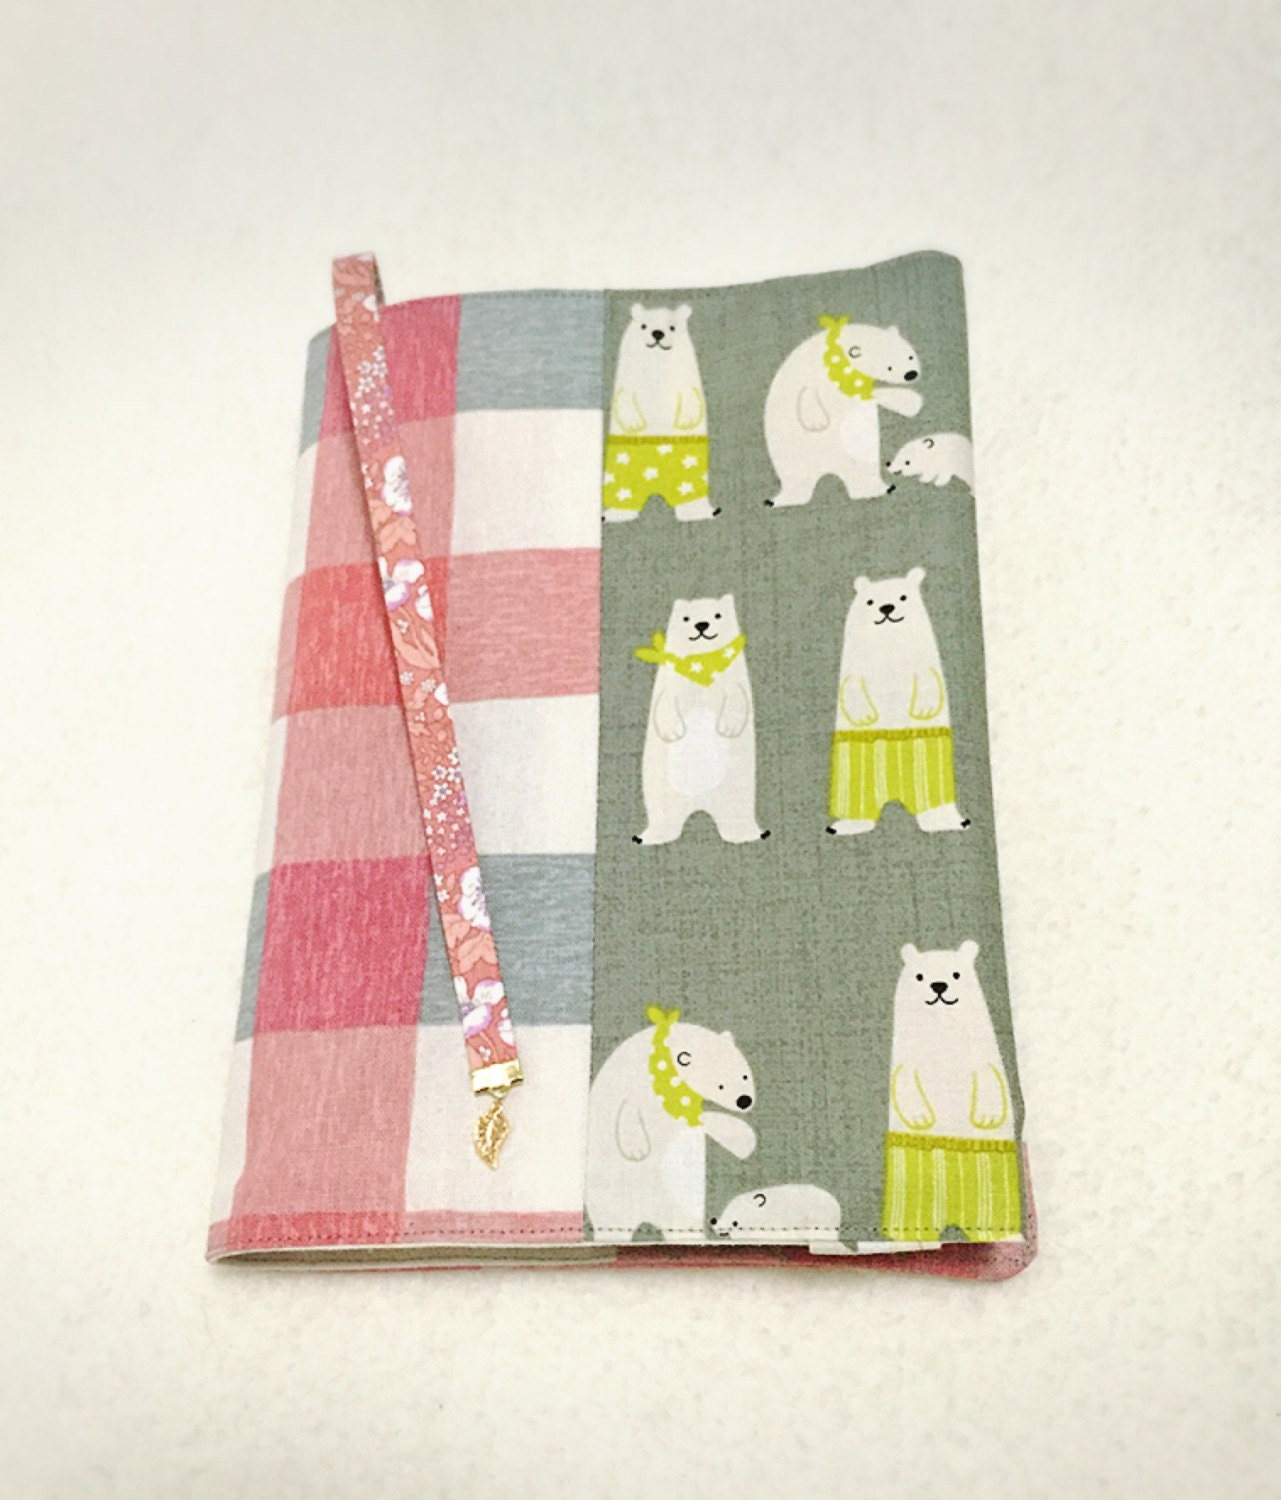 Adjustable Fabric Book Cover : Adjustable fabric bookcover with bears in pink and gray